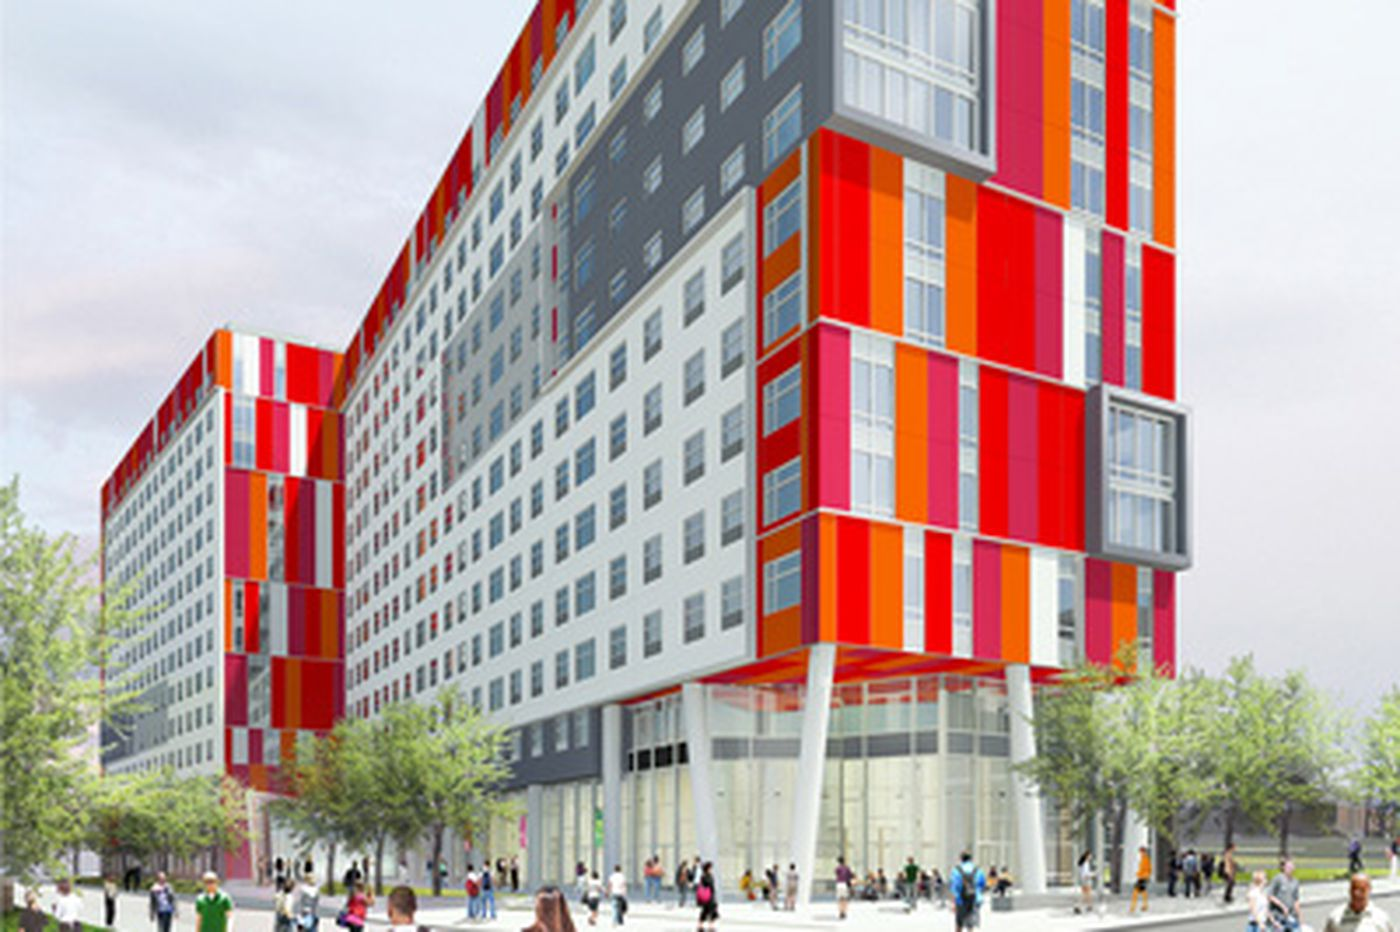 Construction begins on $100 million student apartment building at Temple